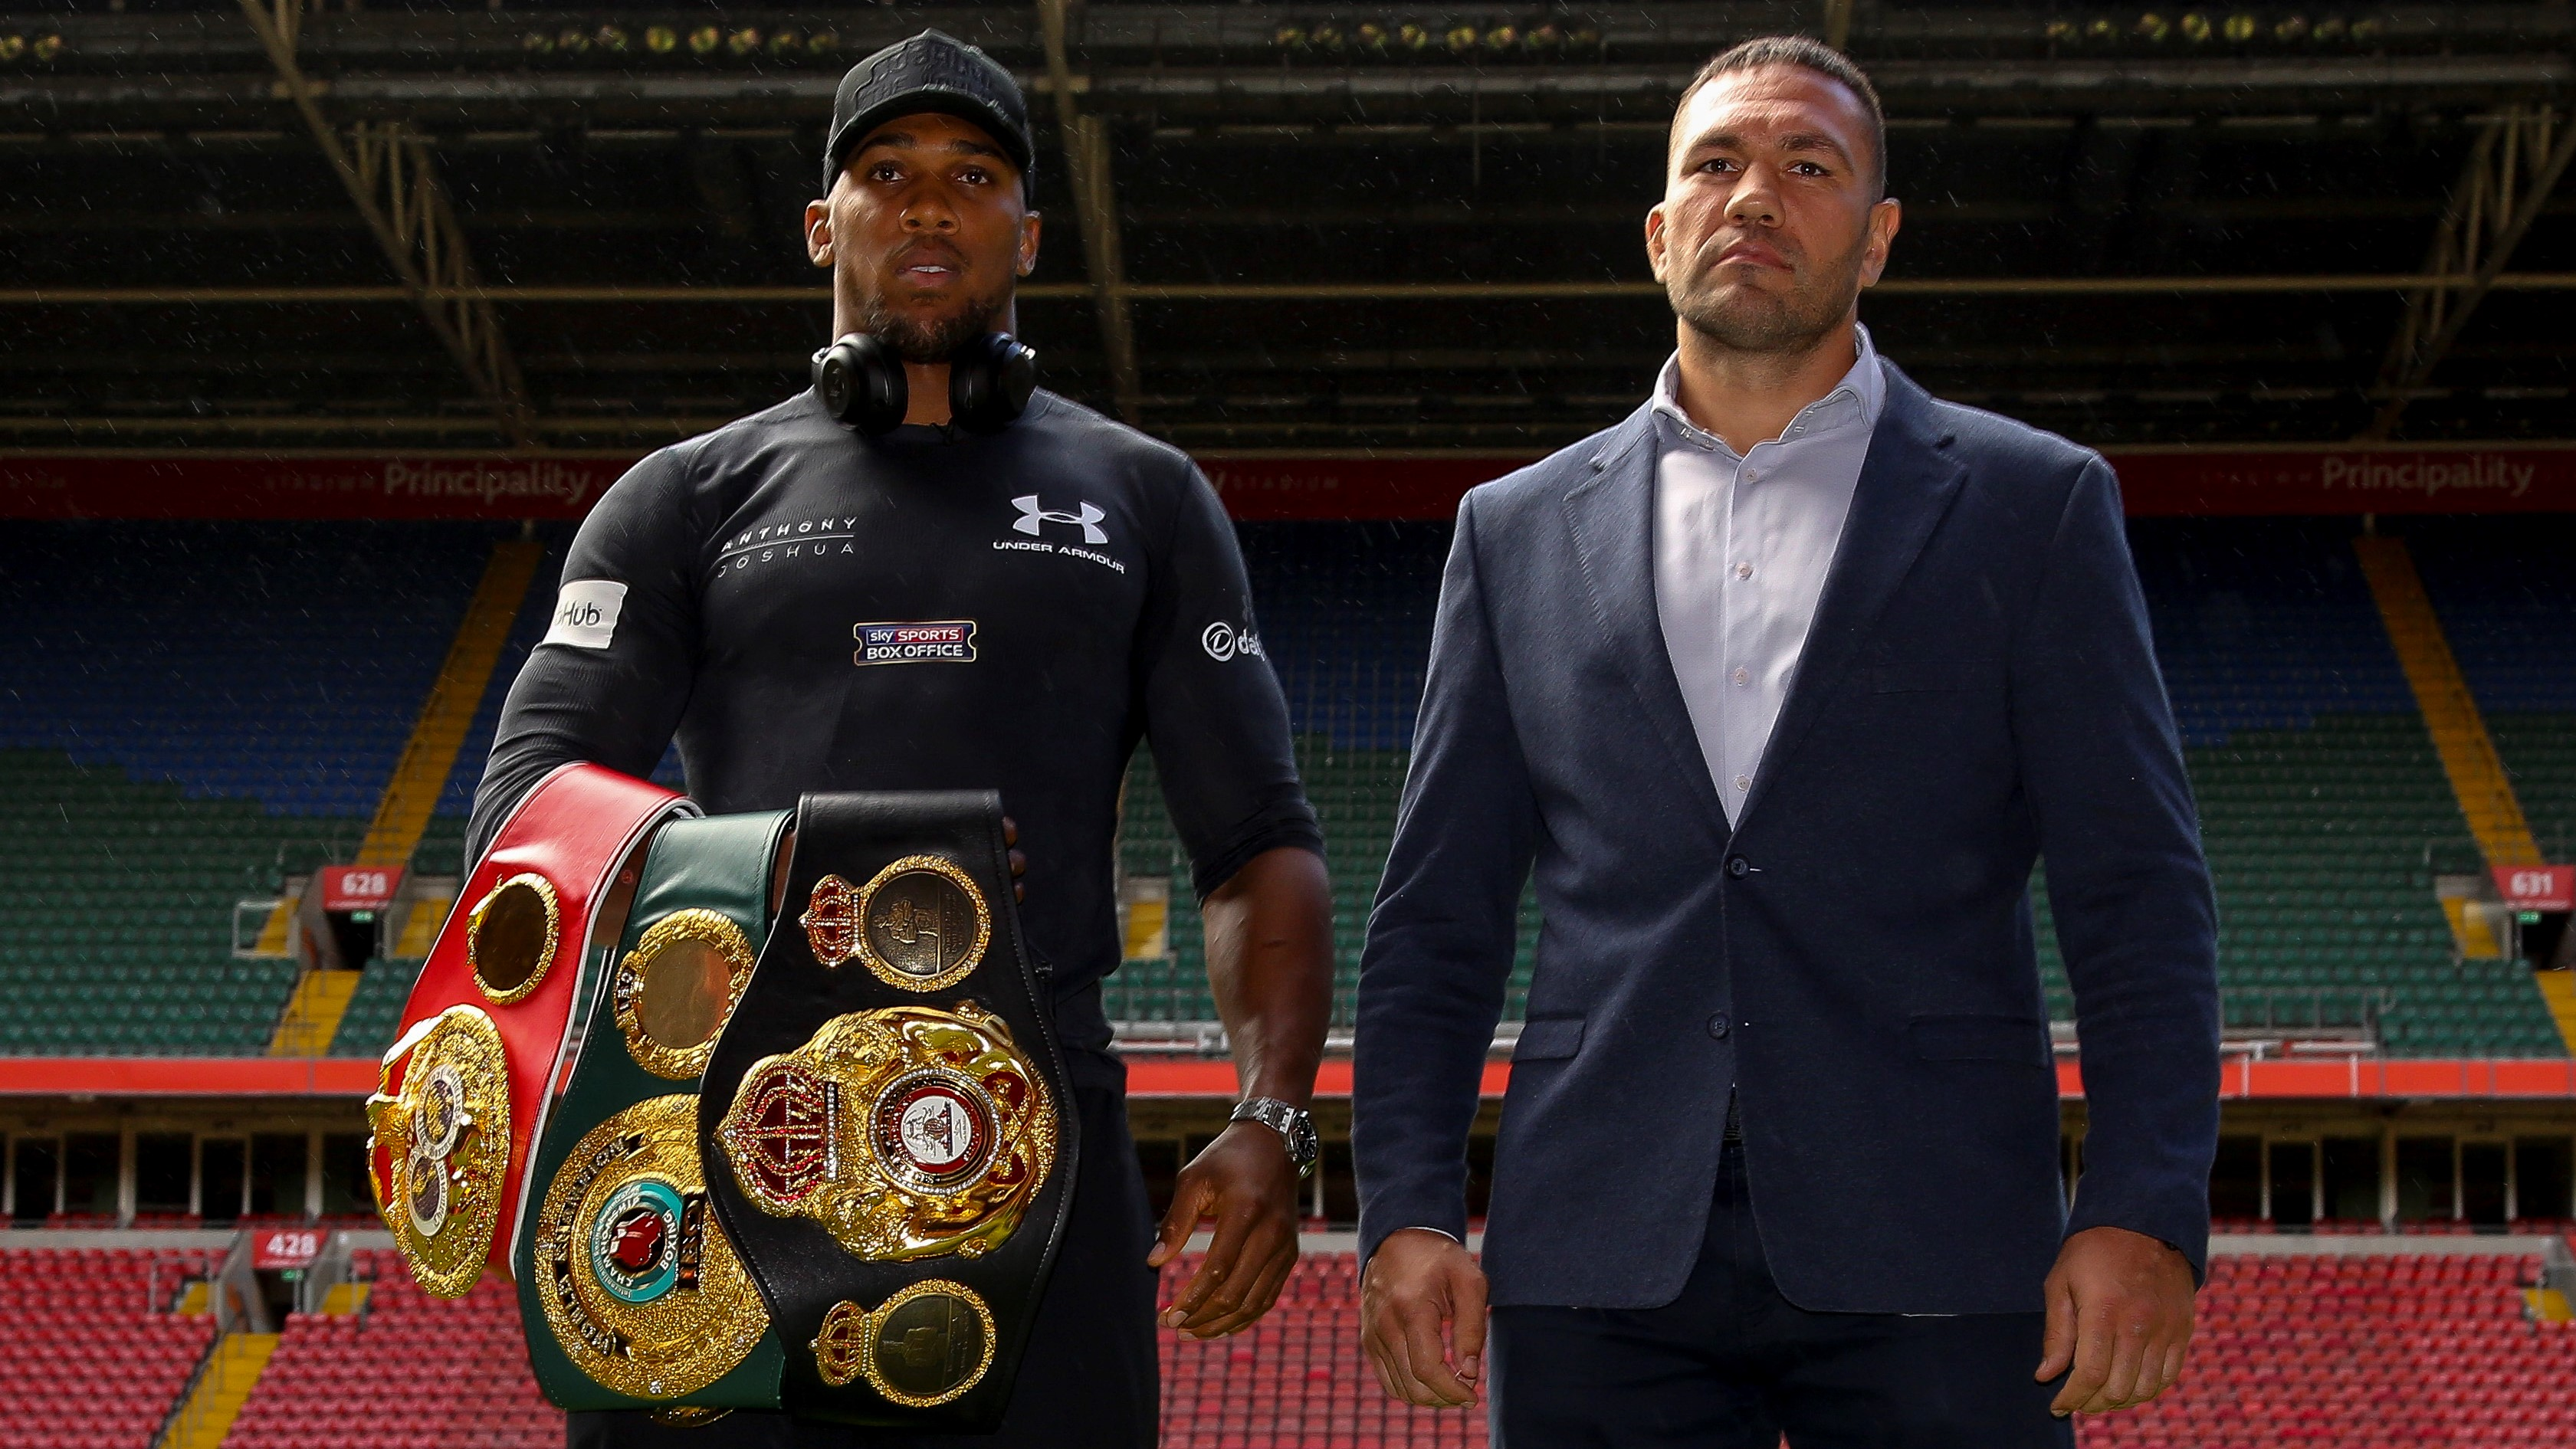 Joshua vs Pulev live stream: how to watch the fight online from anywhere right now